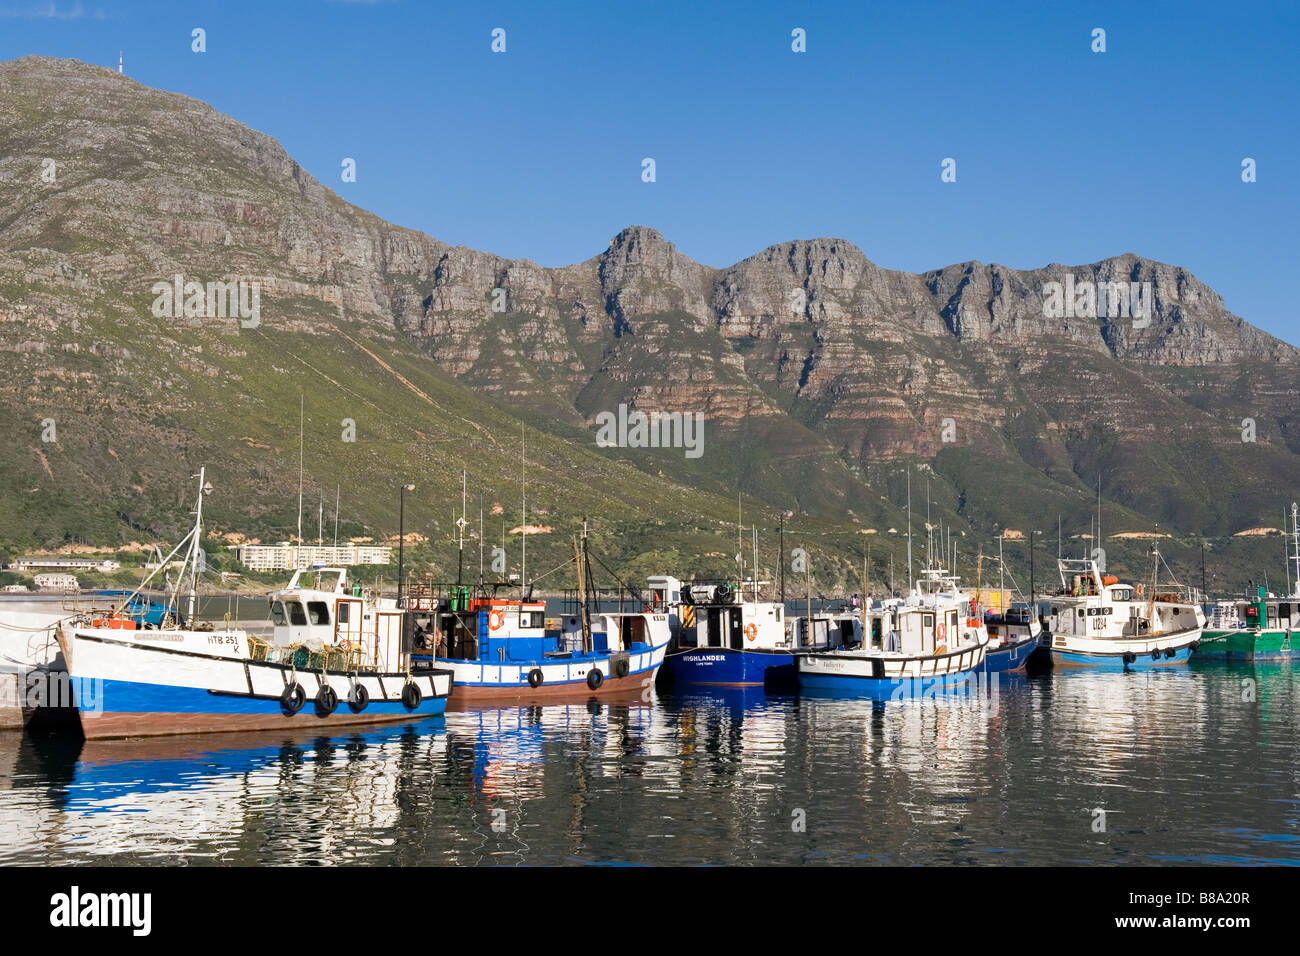 Fish trawlers in the harbor of Hout Bay Western Cape South Africa - Stock Image